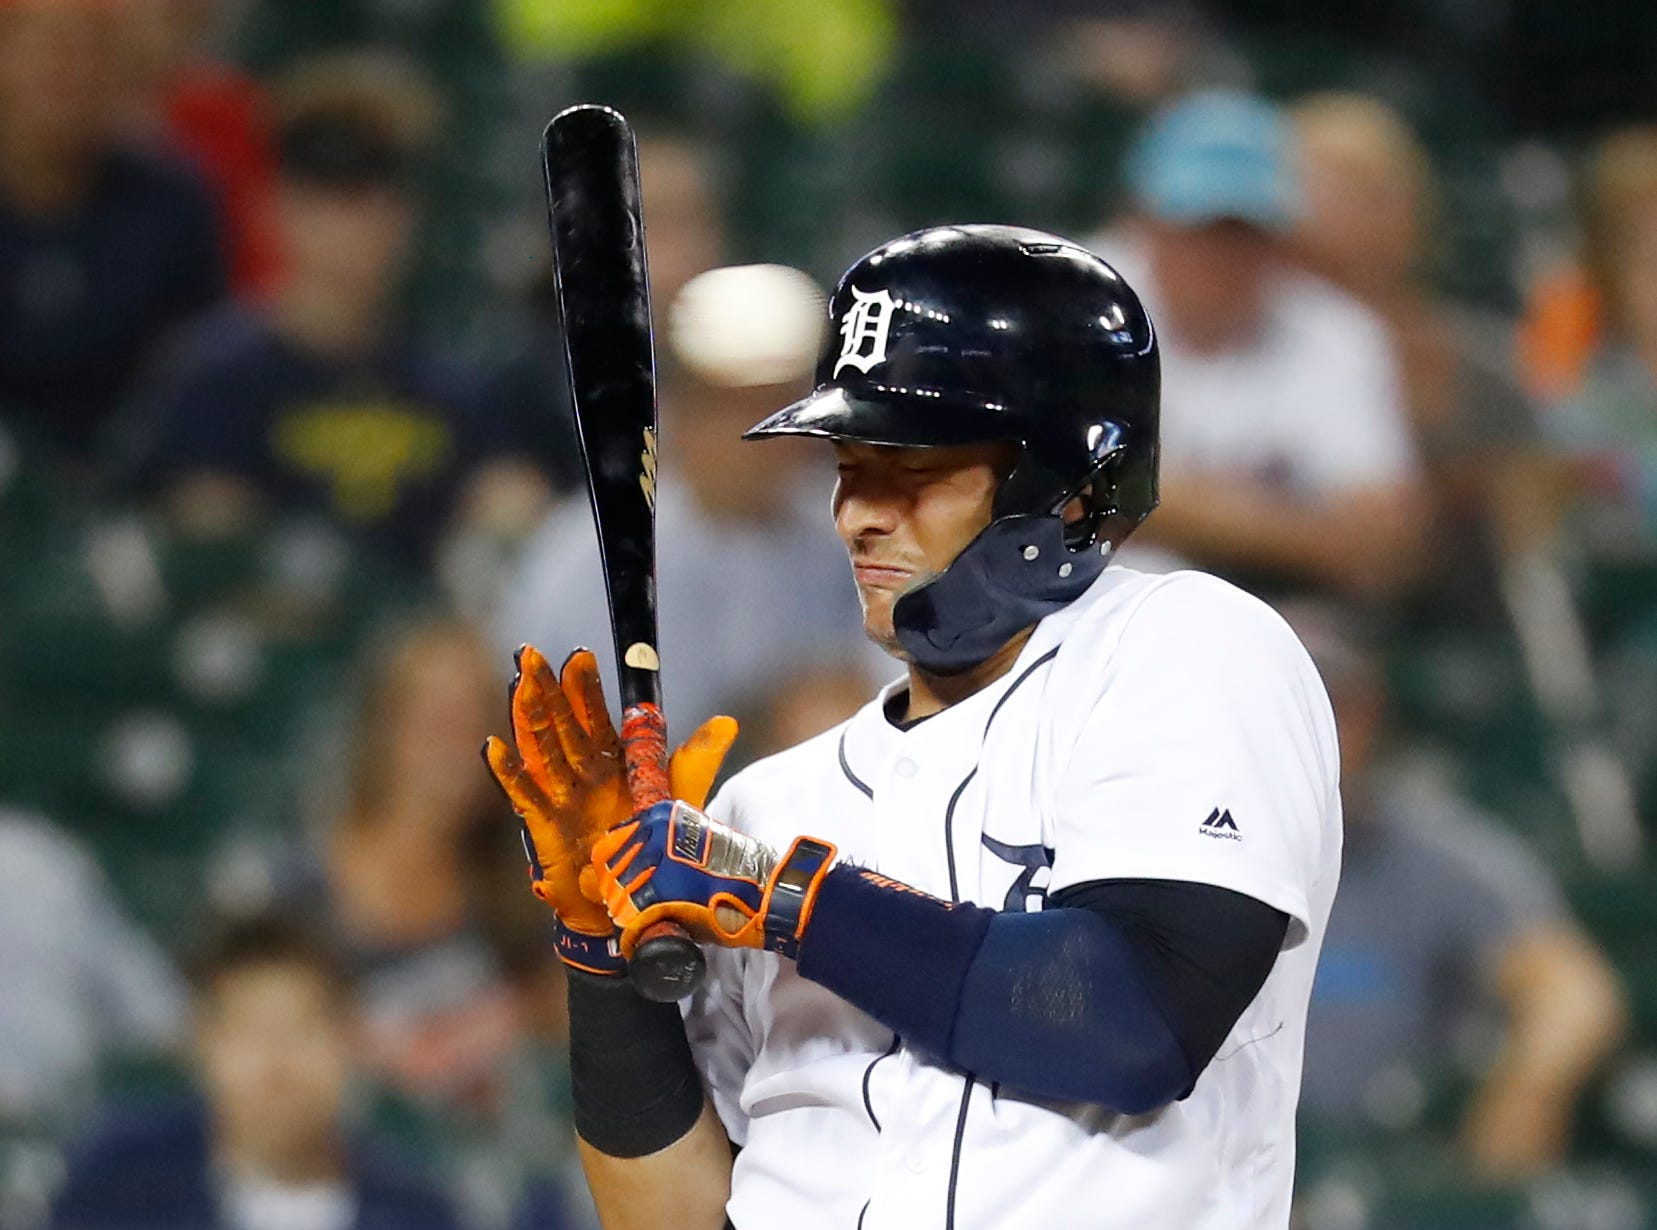 Detroit Tigers' Jose Iglesias reacts to an inside pitch in the eighth inning.